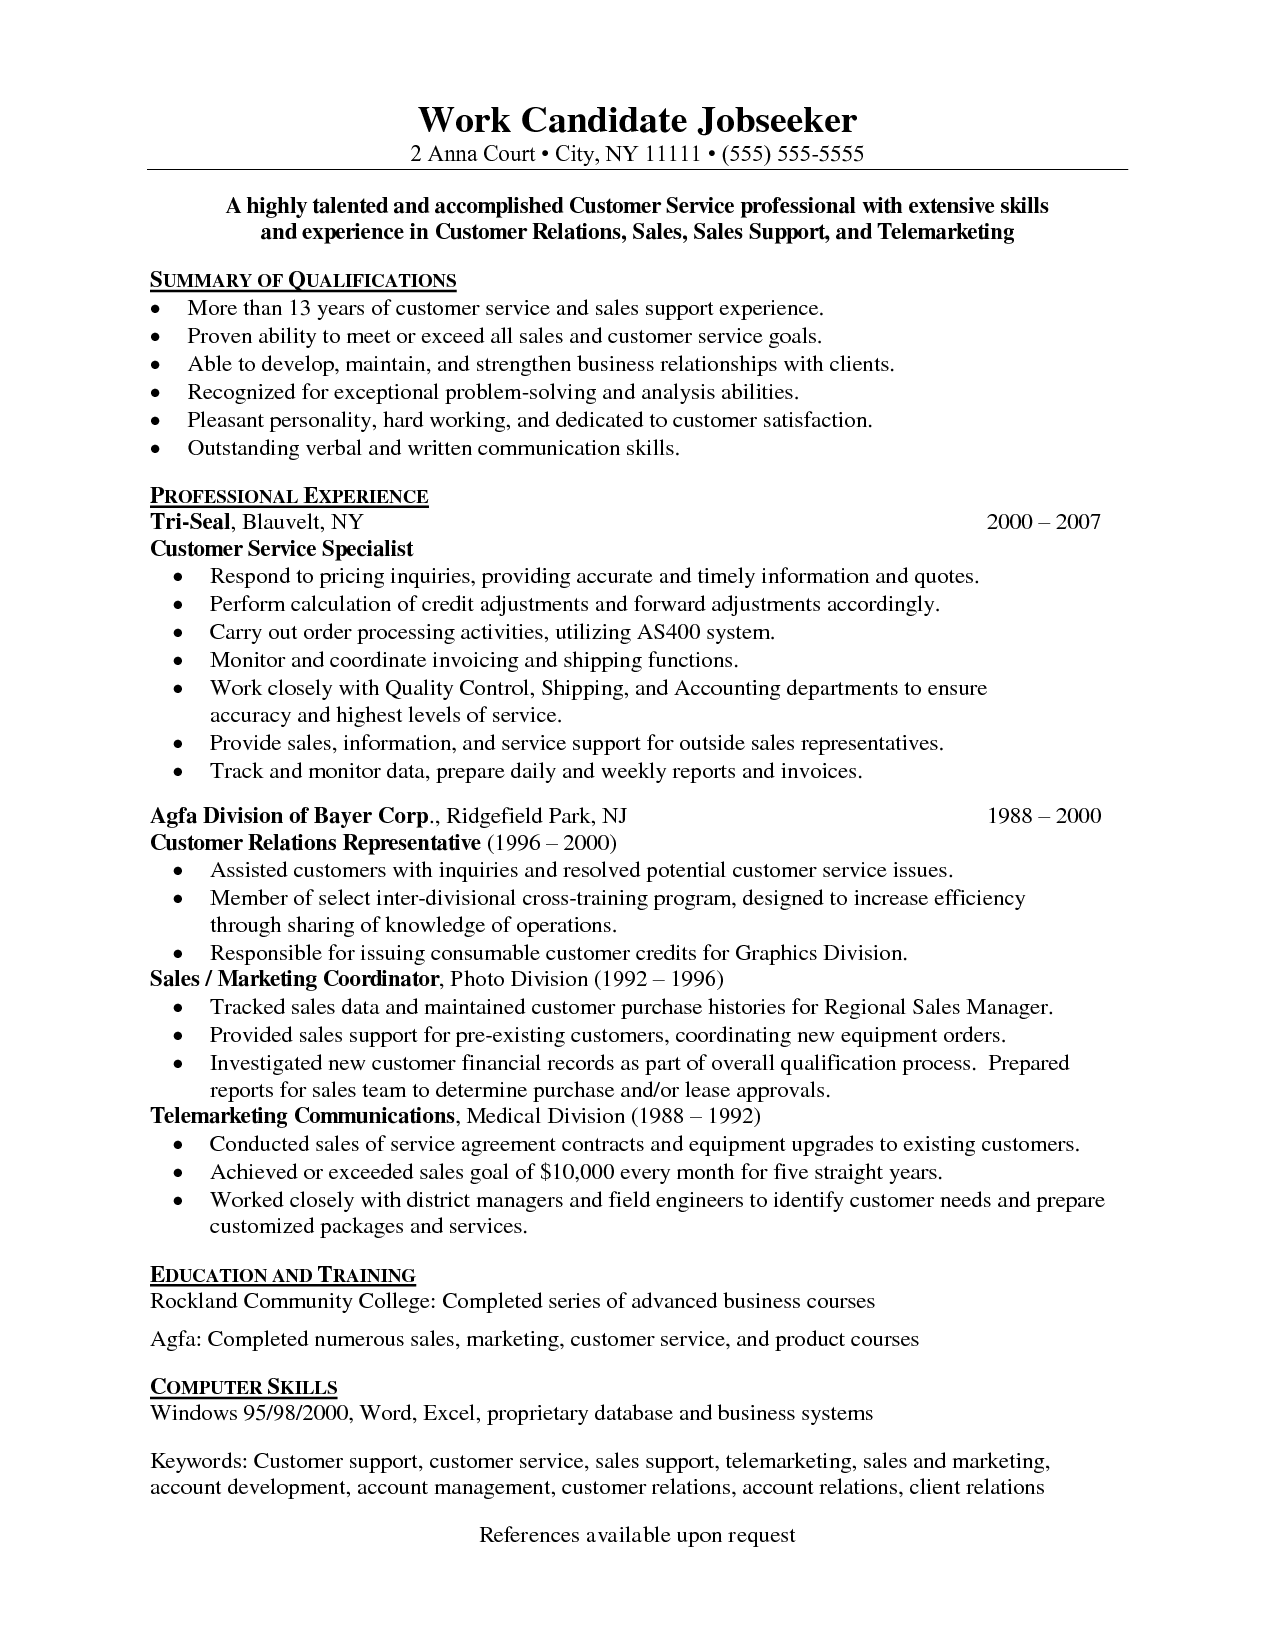 customer relations officer sample resume affidavit templates customer service resume 34 customer relations officer sample resumehtml